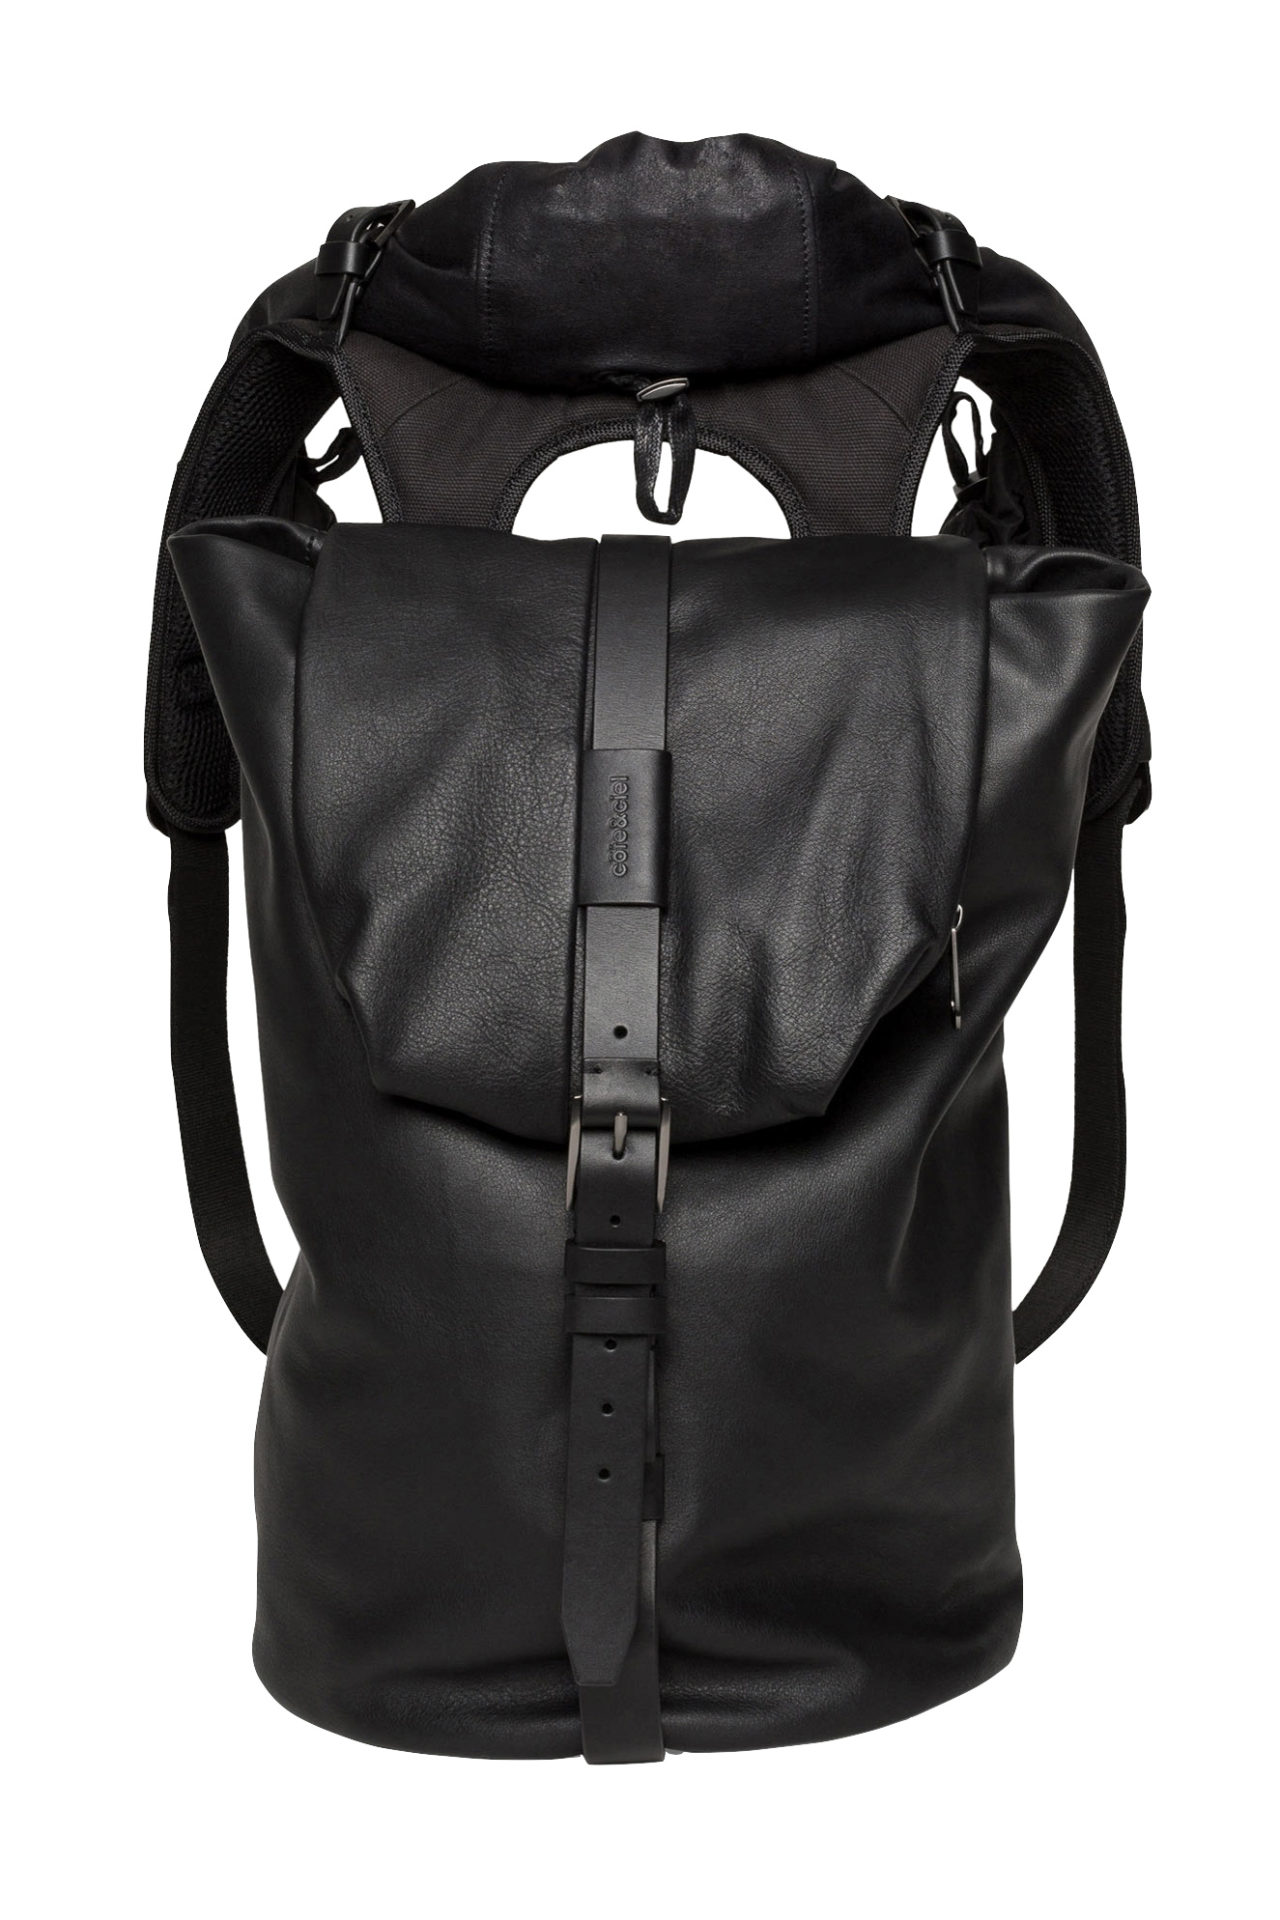 Cote & Ciel Backpack